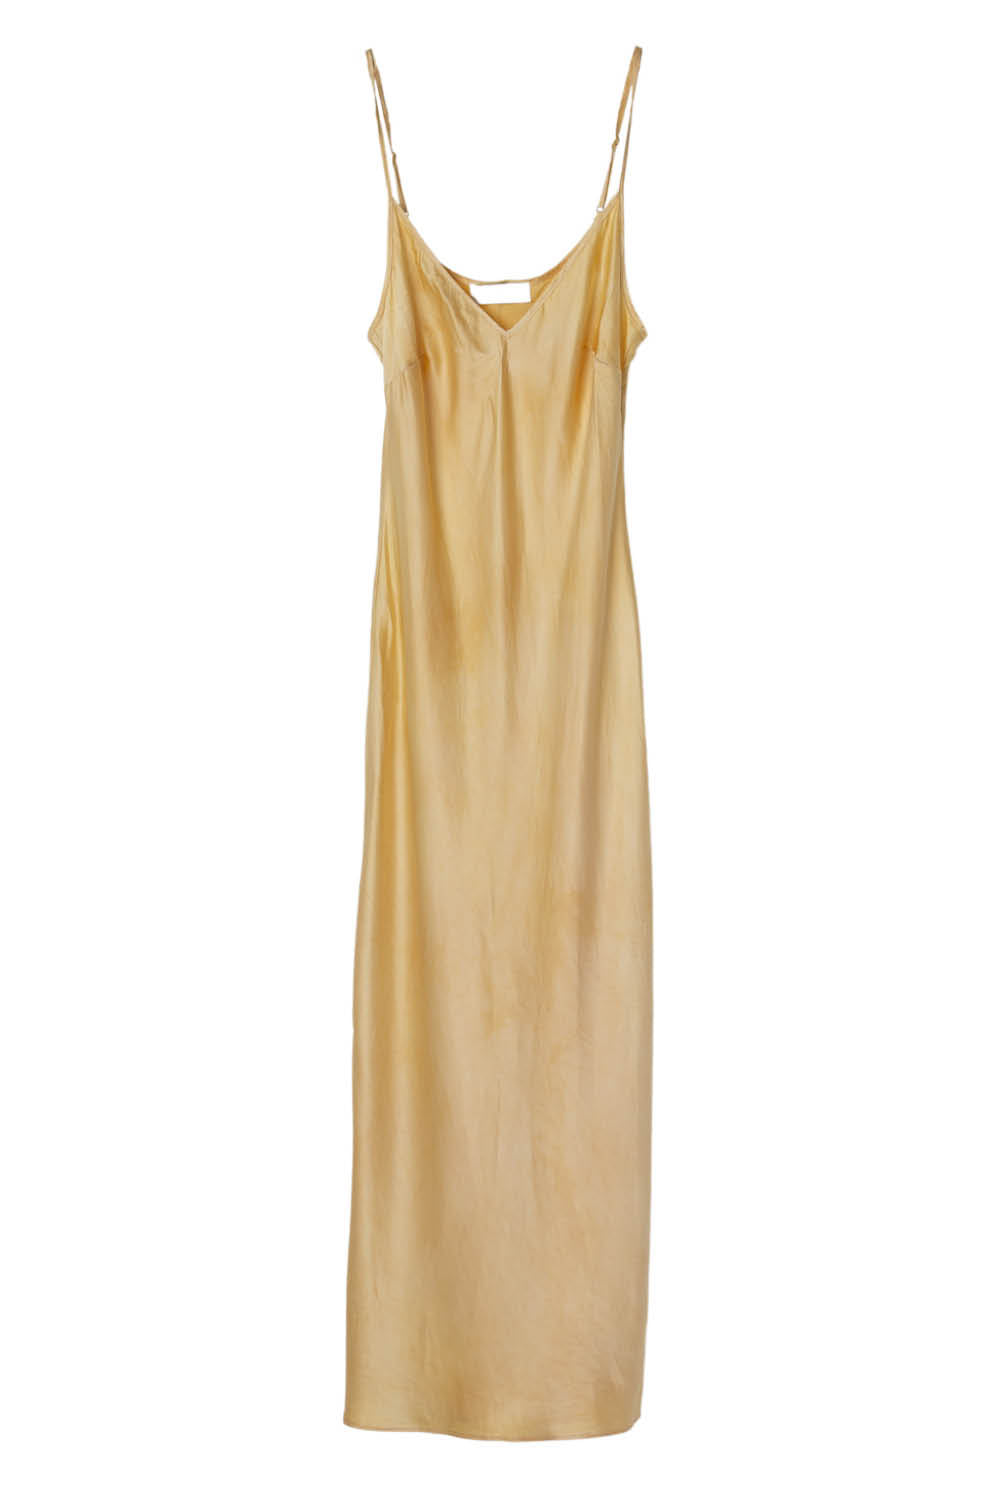 Aphrodite Midi Dress in Lemon Iris